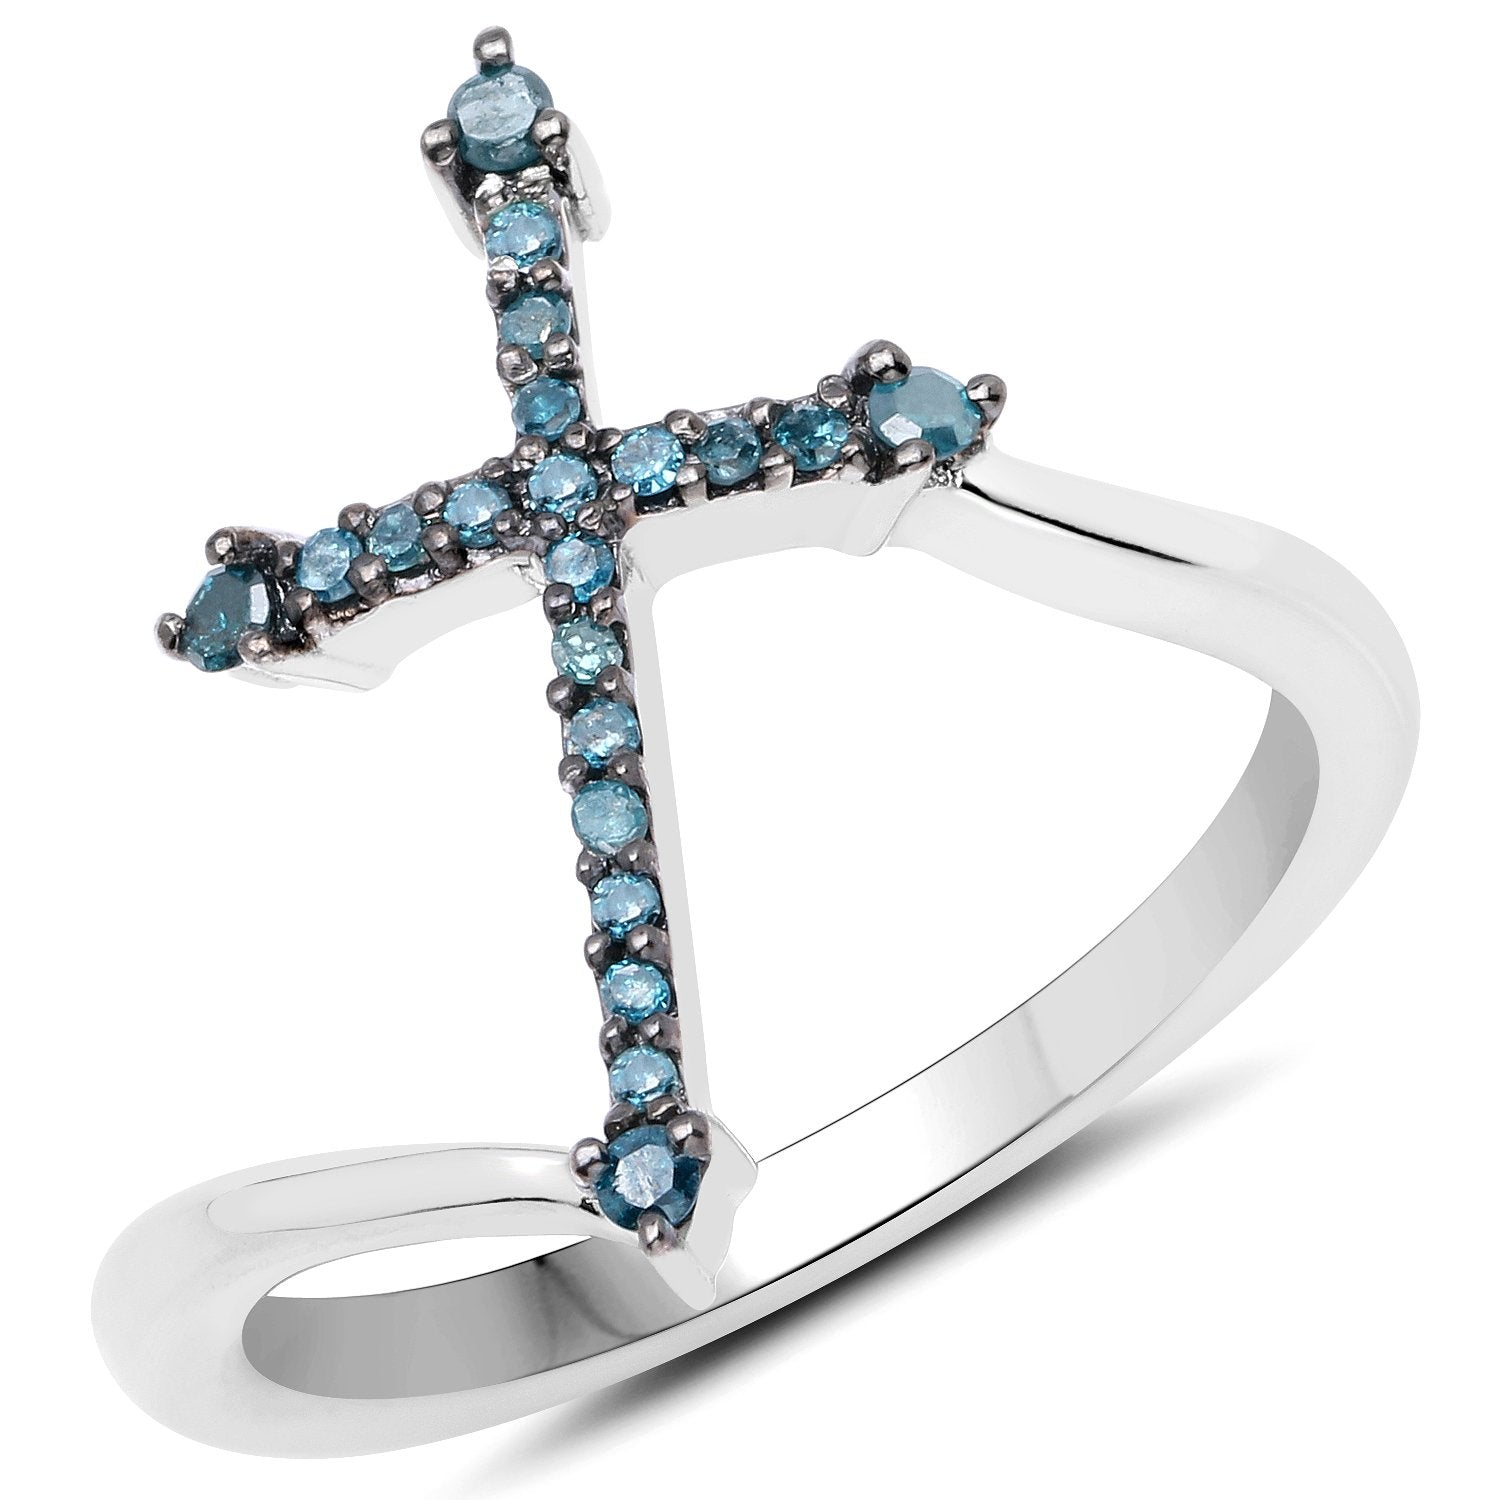 LoveHuang 0.16 Carats Genuine Blue Diamond (I-J, I2-I3) Cross Ring Solid .925 Sterling Silver With Rhodium Plating